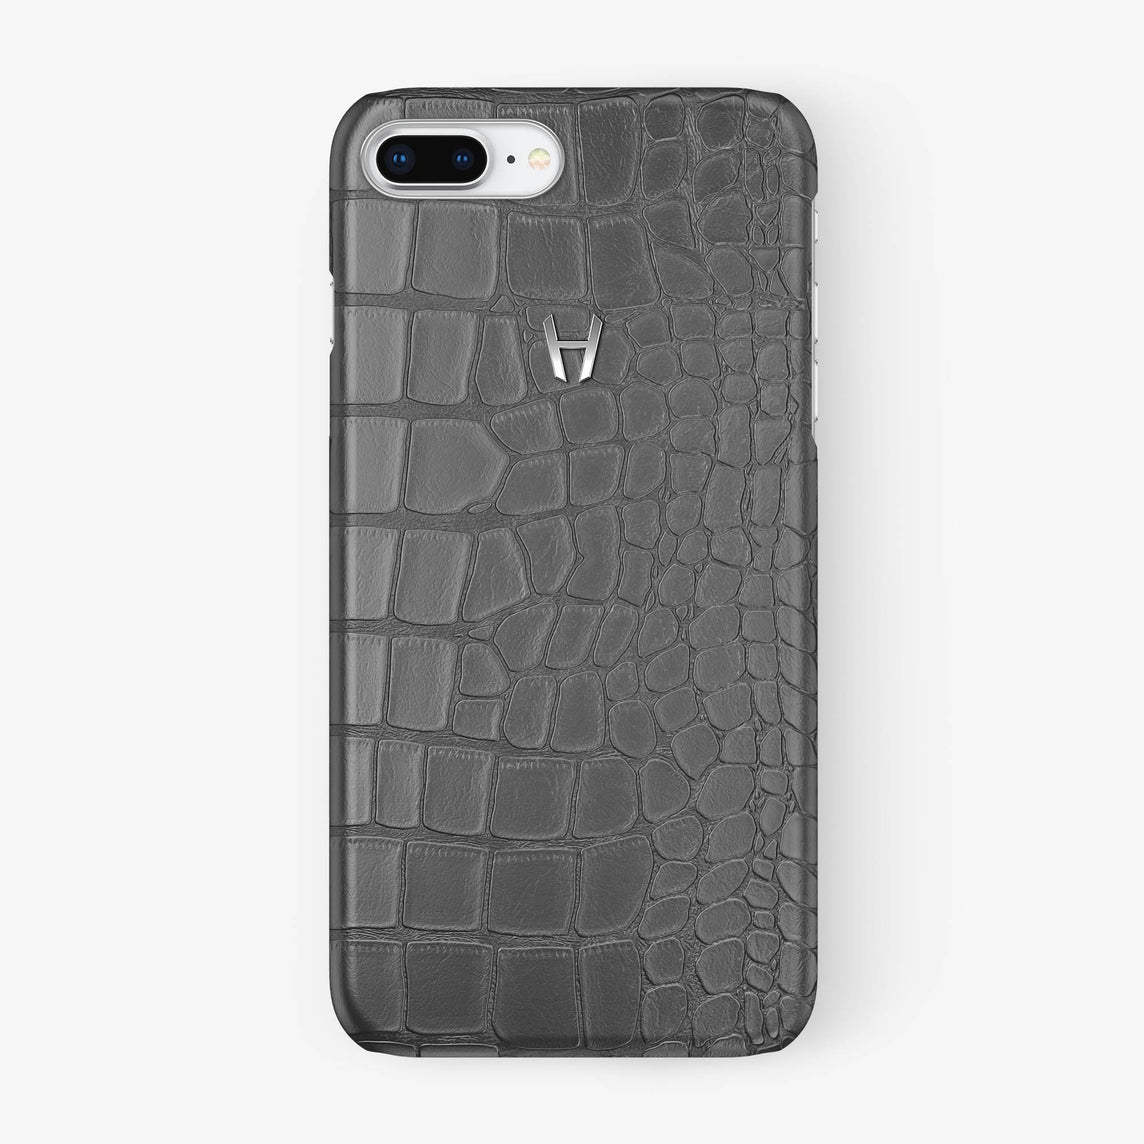 Alligator Case iPhone 7/8 Plus | Grey - Stainless Steel - Hadoro